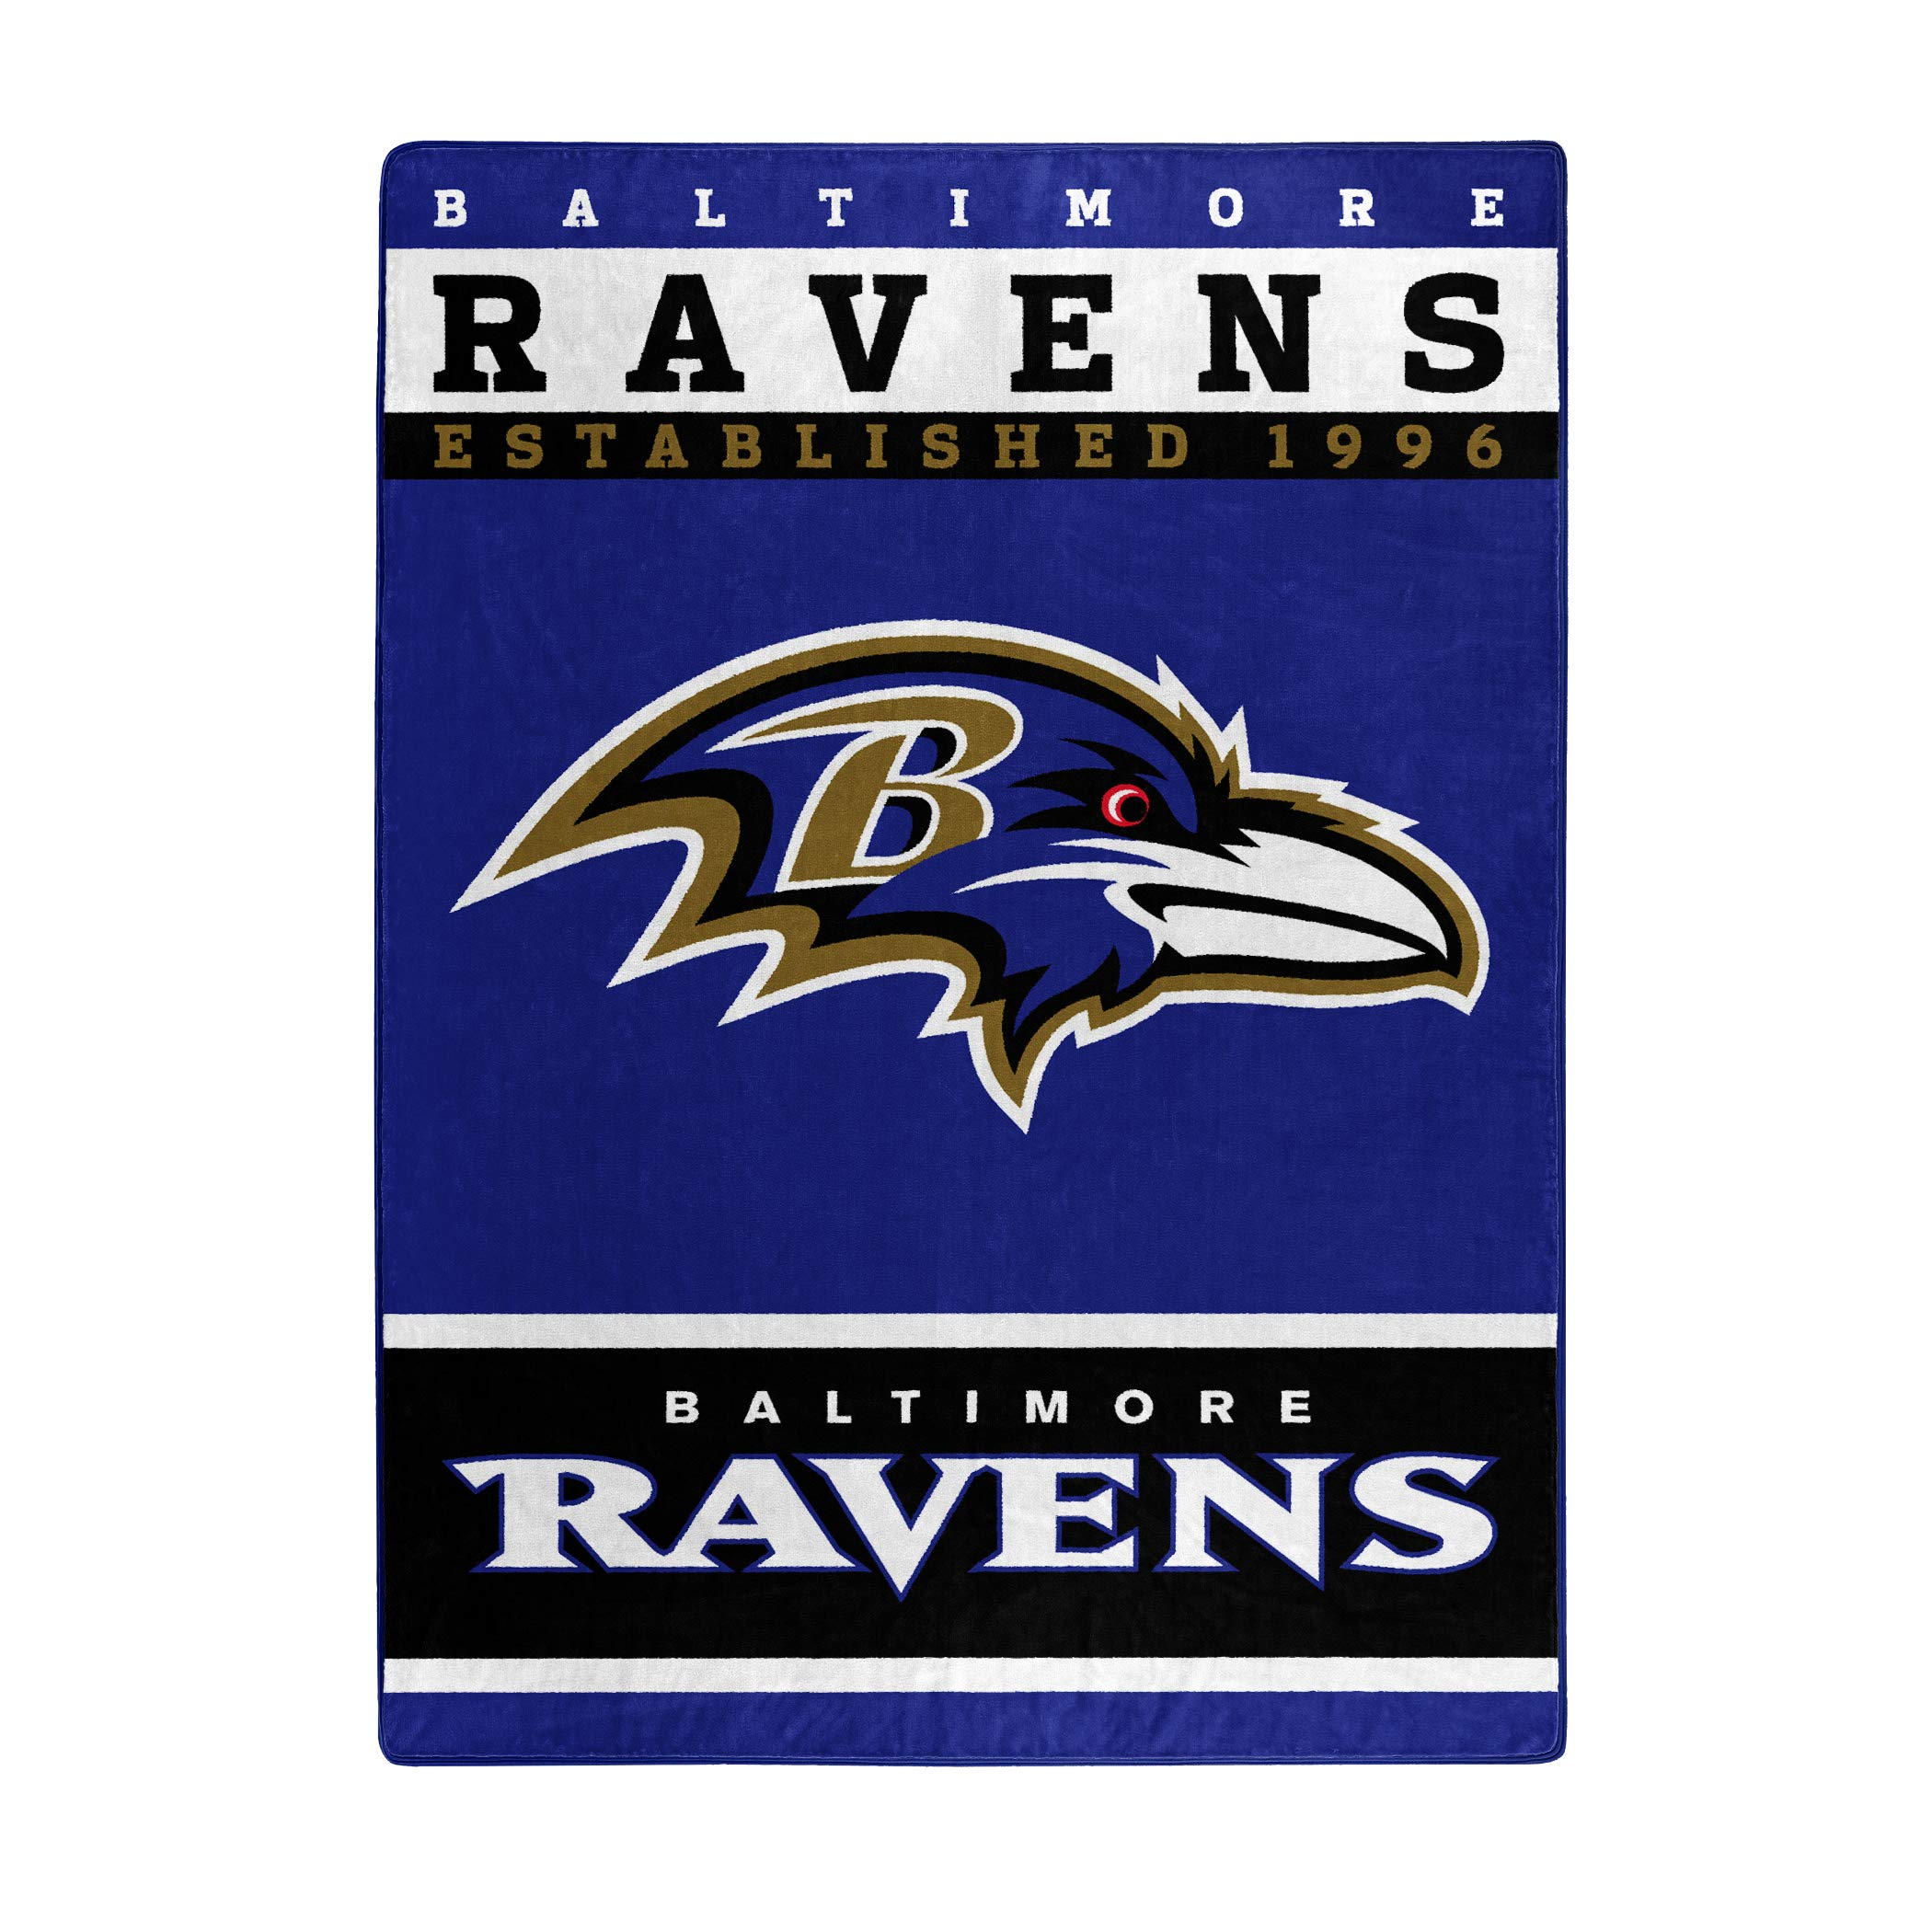 The Northwest Company Officially Licensed NFL Baltimore Ravens 12th Man Plush Raschel Throw Blanket, 60'' x 80''